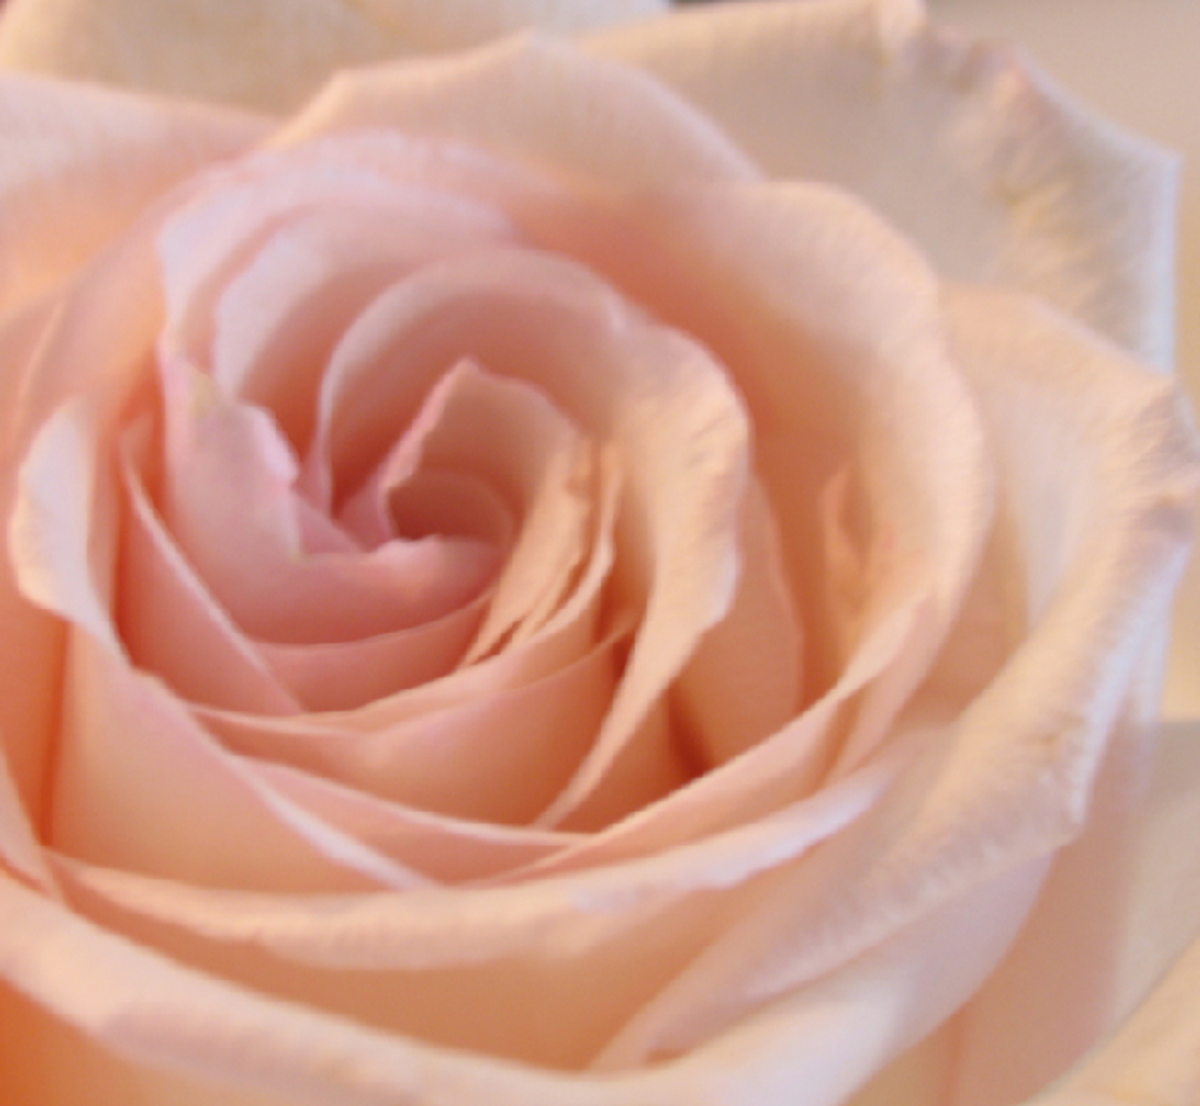 Soft Peach Rose Close-up Picture